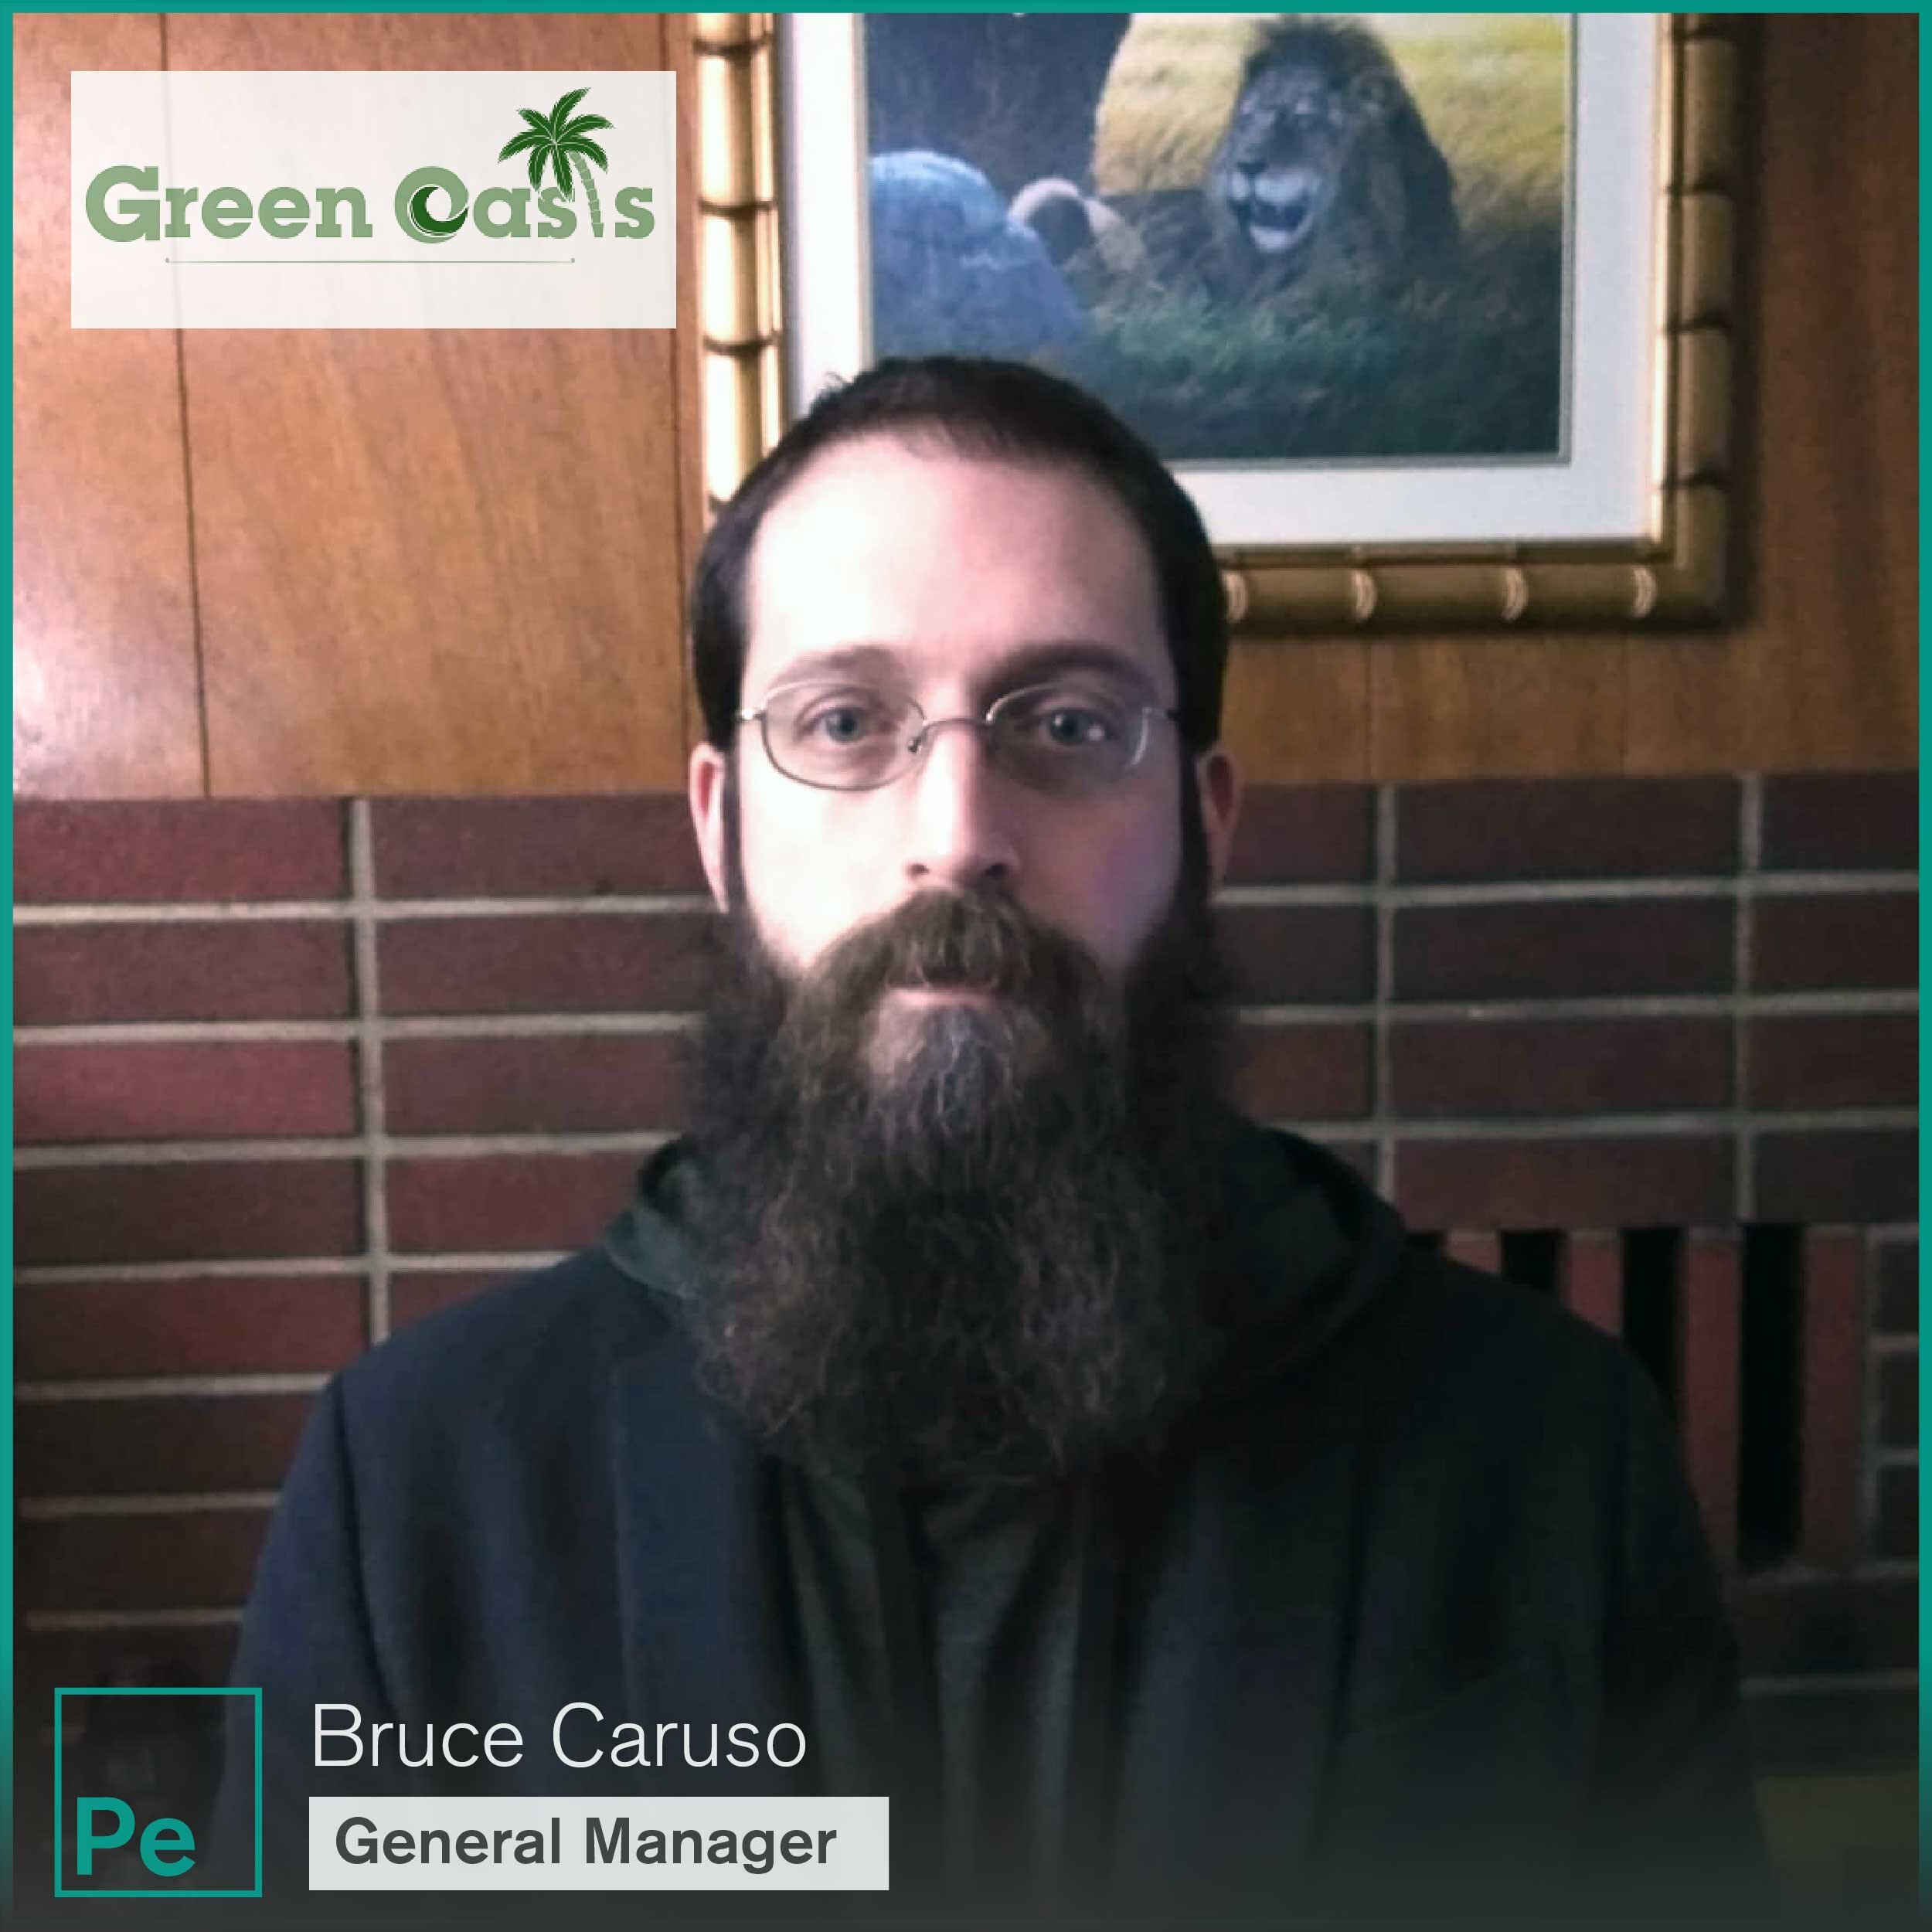 Bruce Caruso, General Manager for Green Oasis Cannabis Dispensary in Portland, Oregon, wanted to change the way customer shop for their cannabis products. We re-formatted Green Oasis's product offerings to focus on actual effects rather than the outdated Indica/Sativa dichotomy. He shares wisdom on how this changes the customer experience and why it keeps them coming back to his shop over competitors.